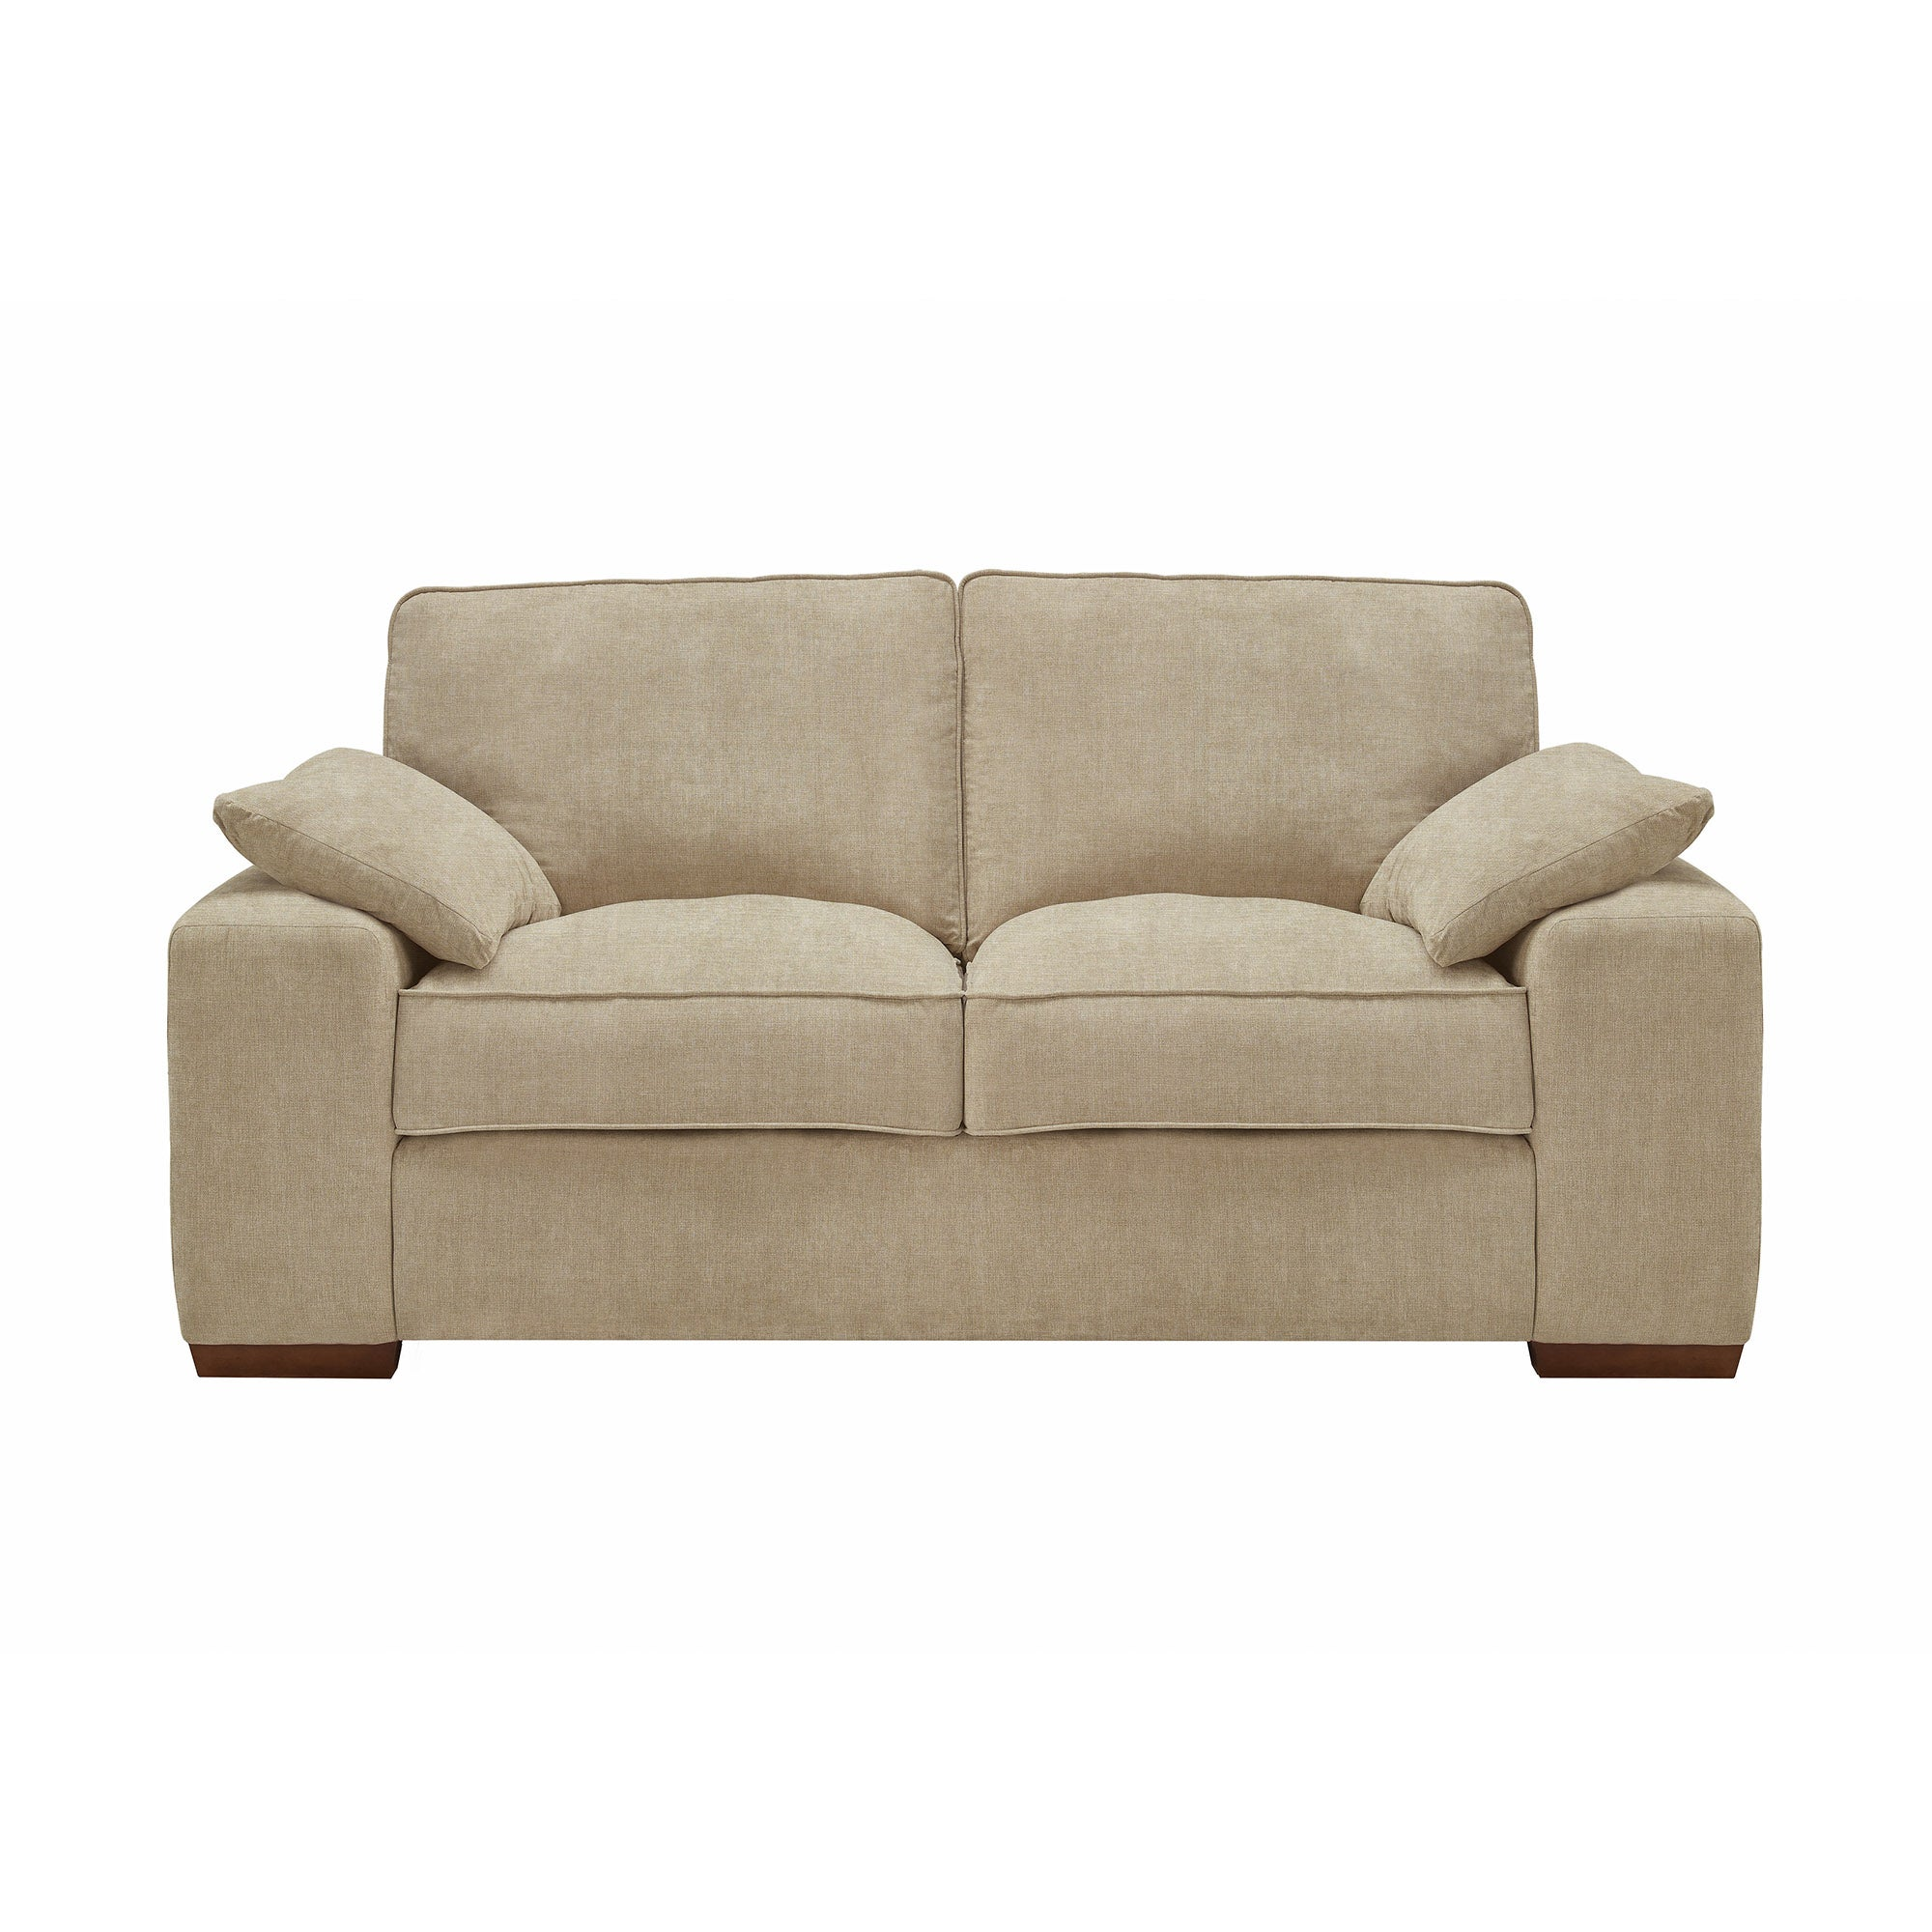 Heston Sofa